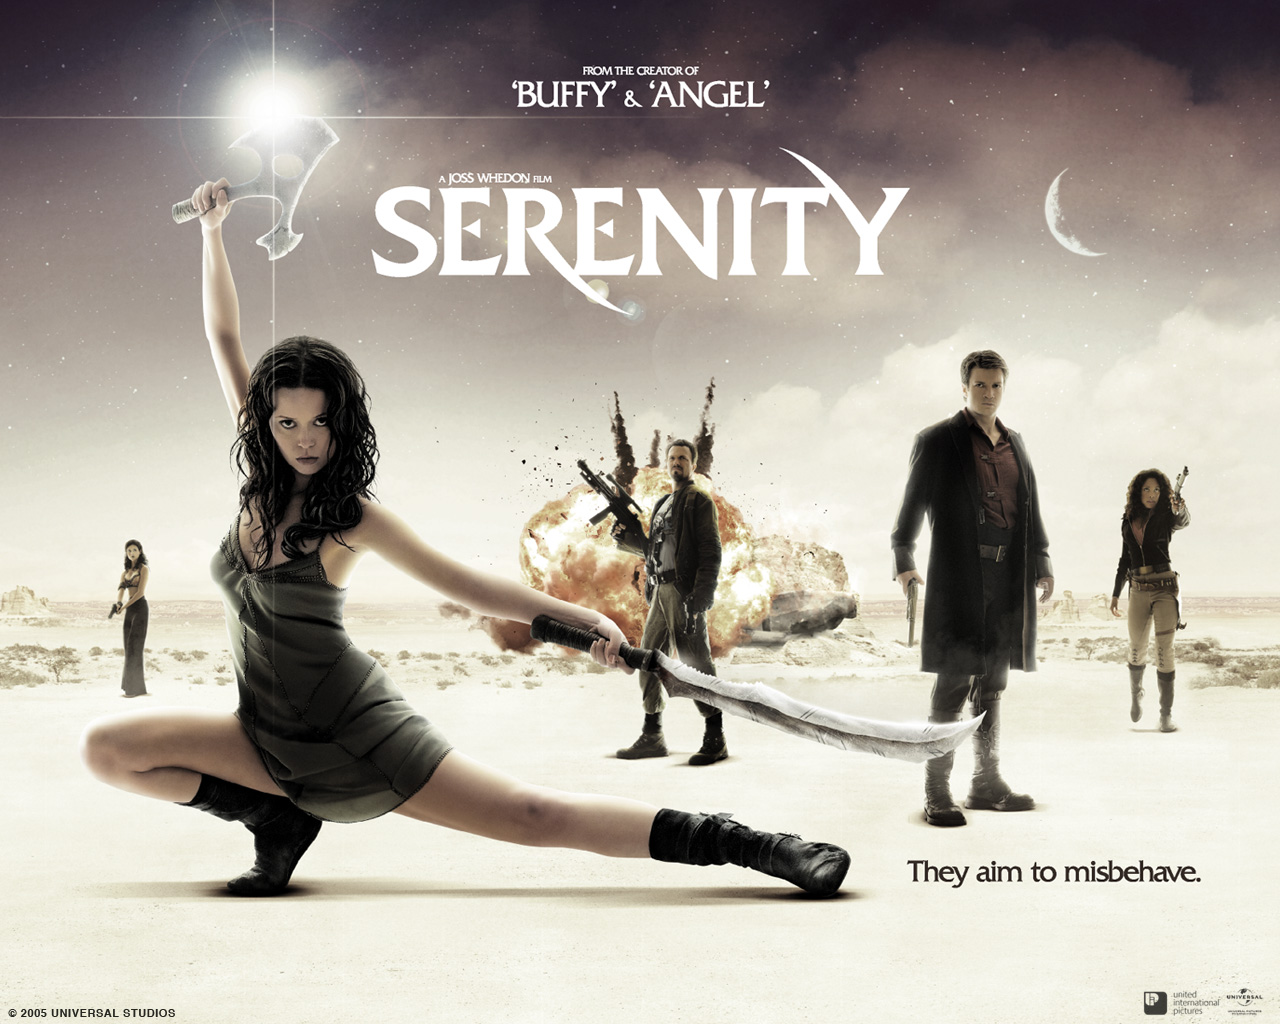 https://bandbent.files.wordpress.com/2010/01/serenity.jpg